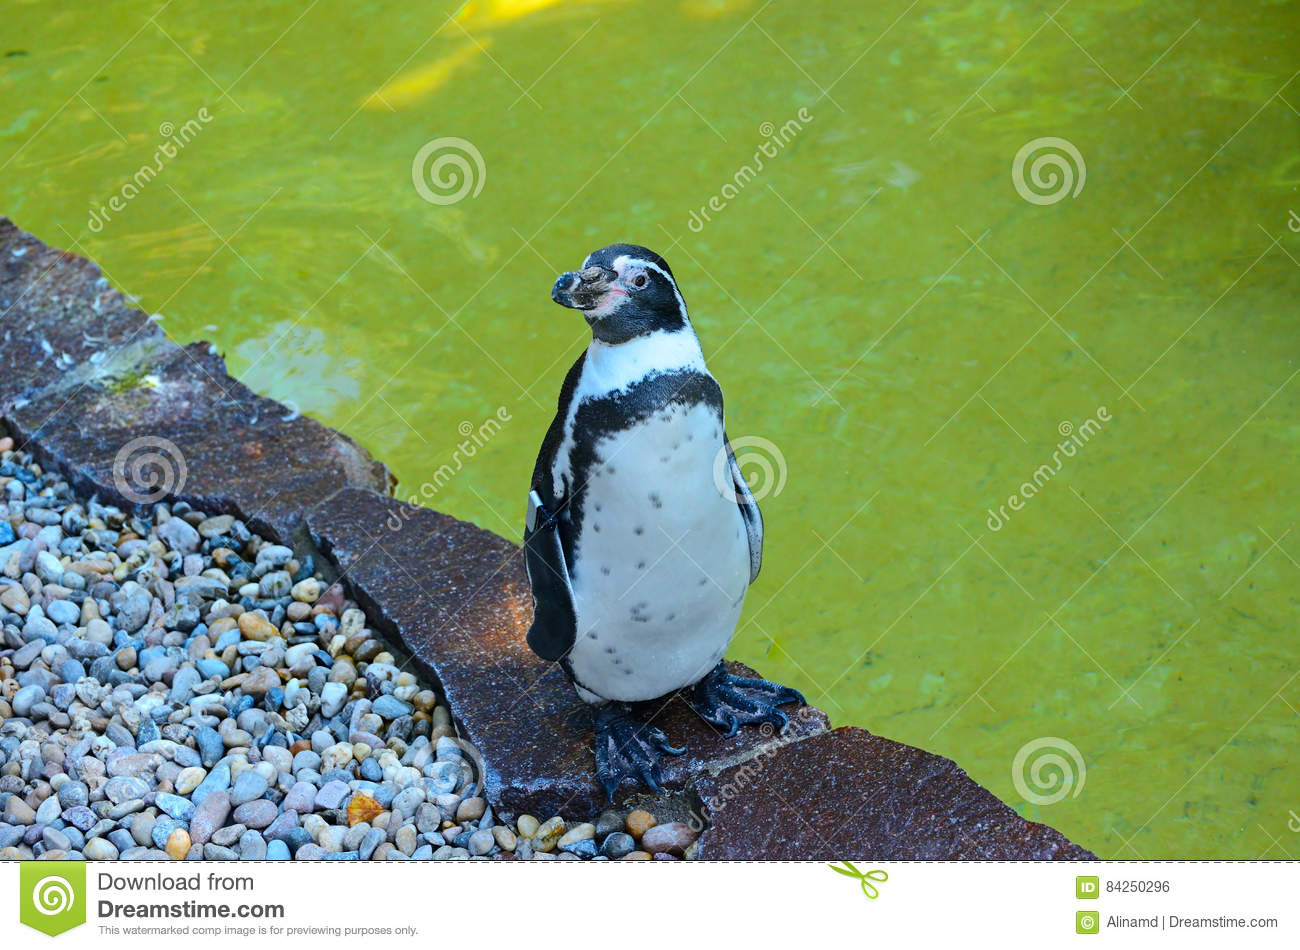 a brief description of penguin species in southern hemisphere Interesting information about emperor penguins, king penguins, chinstrap  penguins & more  most penguins live in the southern hemisphere  the  emperor penguin is the tallest of all penguin species, reaching as tall as 120 cm ( 47 in) in.